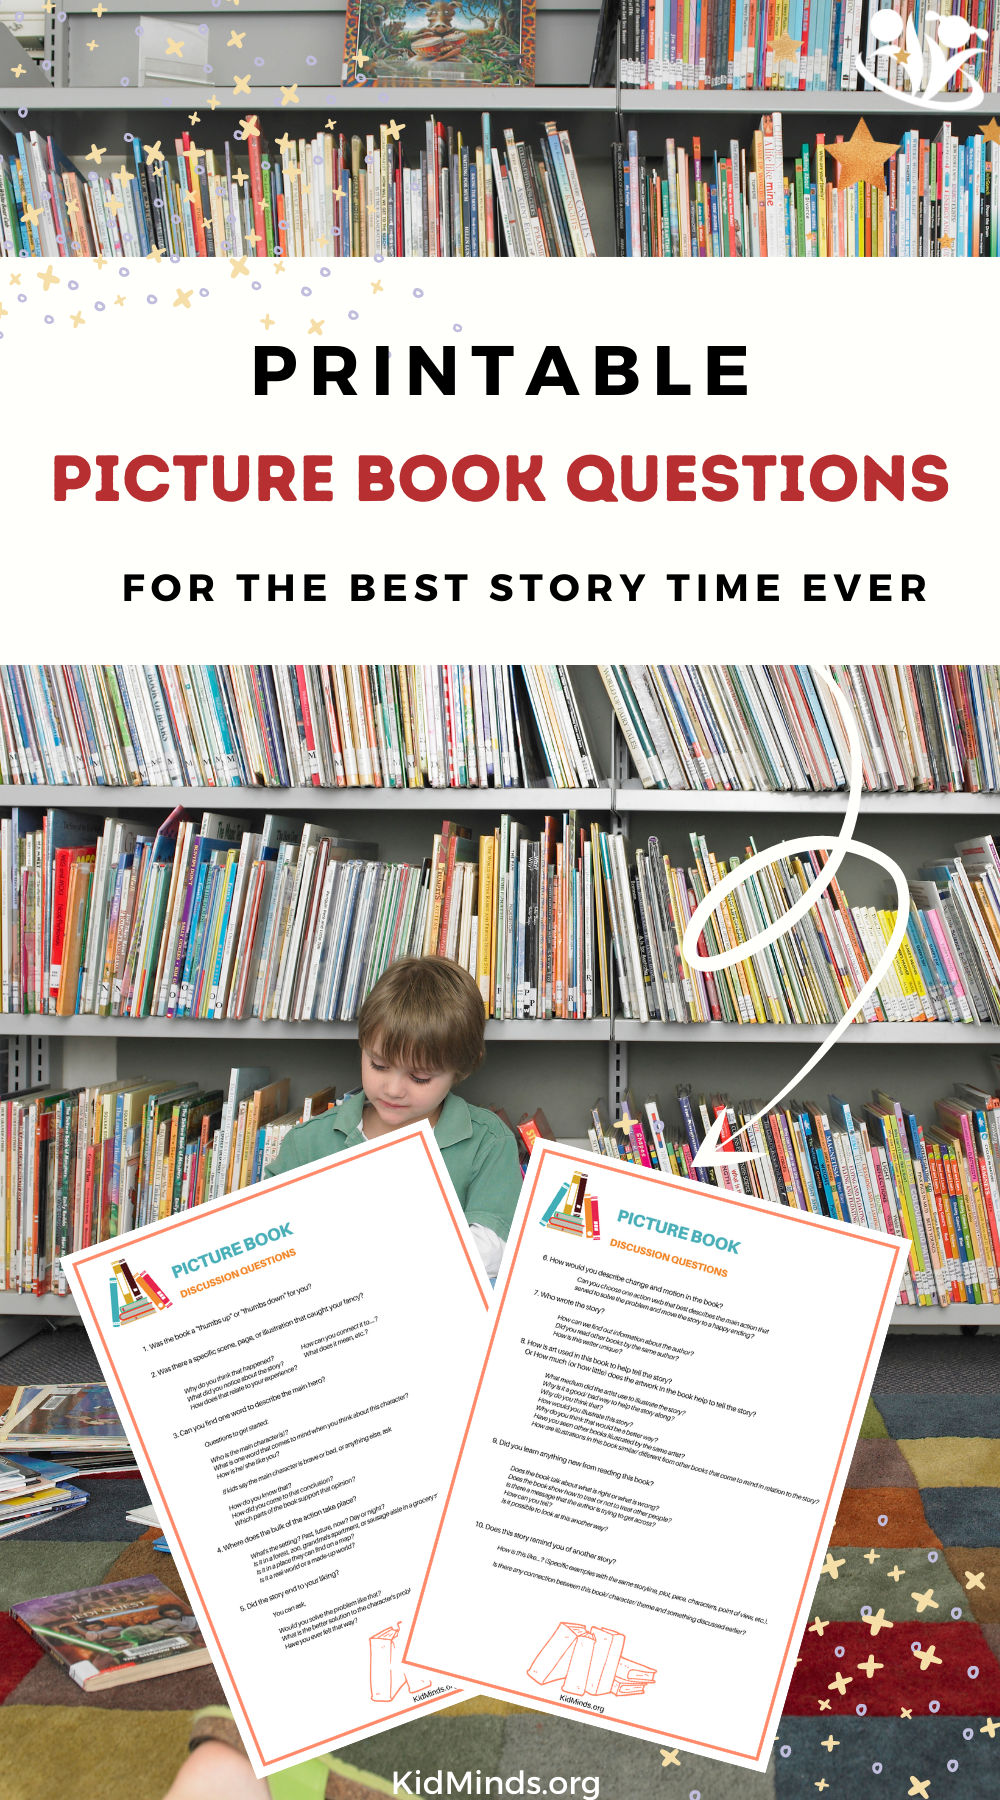 Your guide to asking the kinds of questions that will inspire your kids to think deeper and develop critical thinking skills. #raisingreaders #storytime #picturebooks #discussionquestions